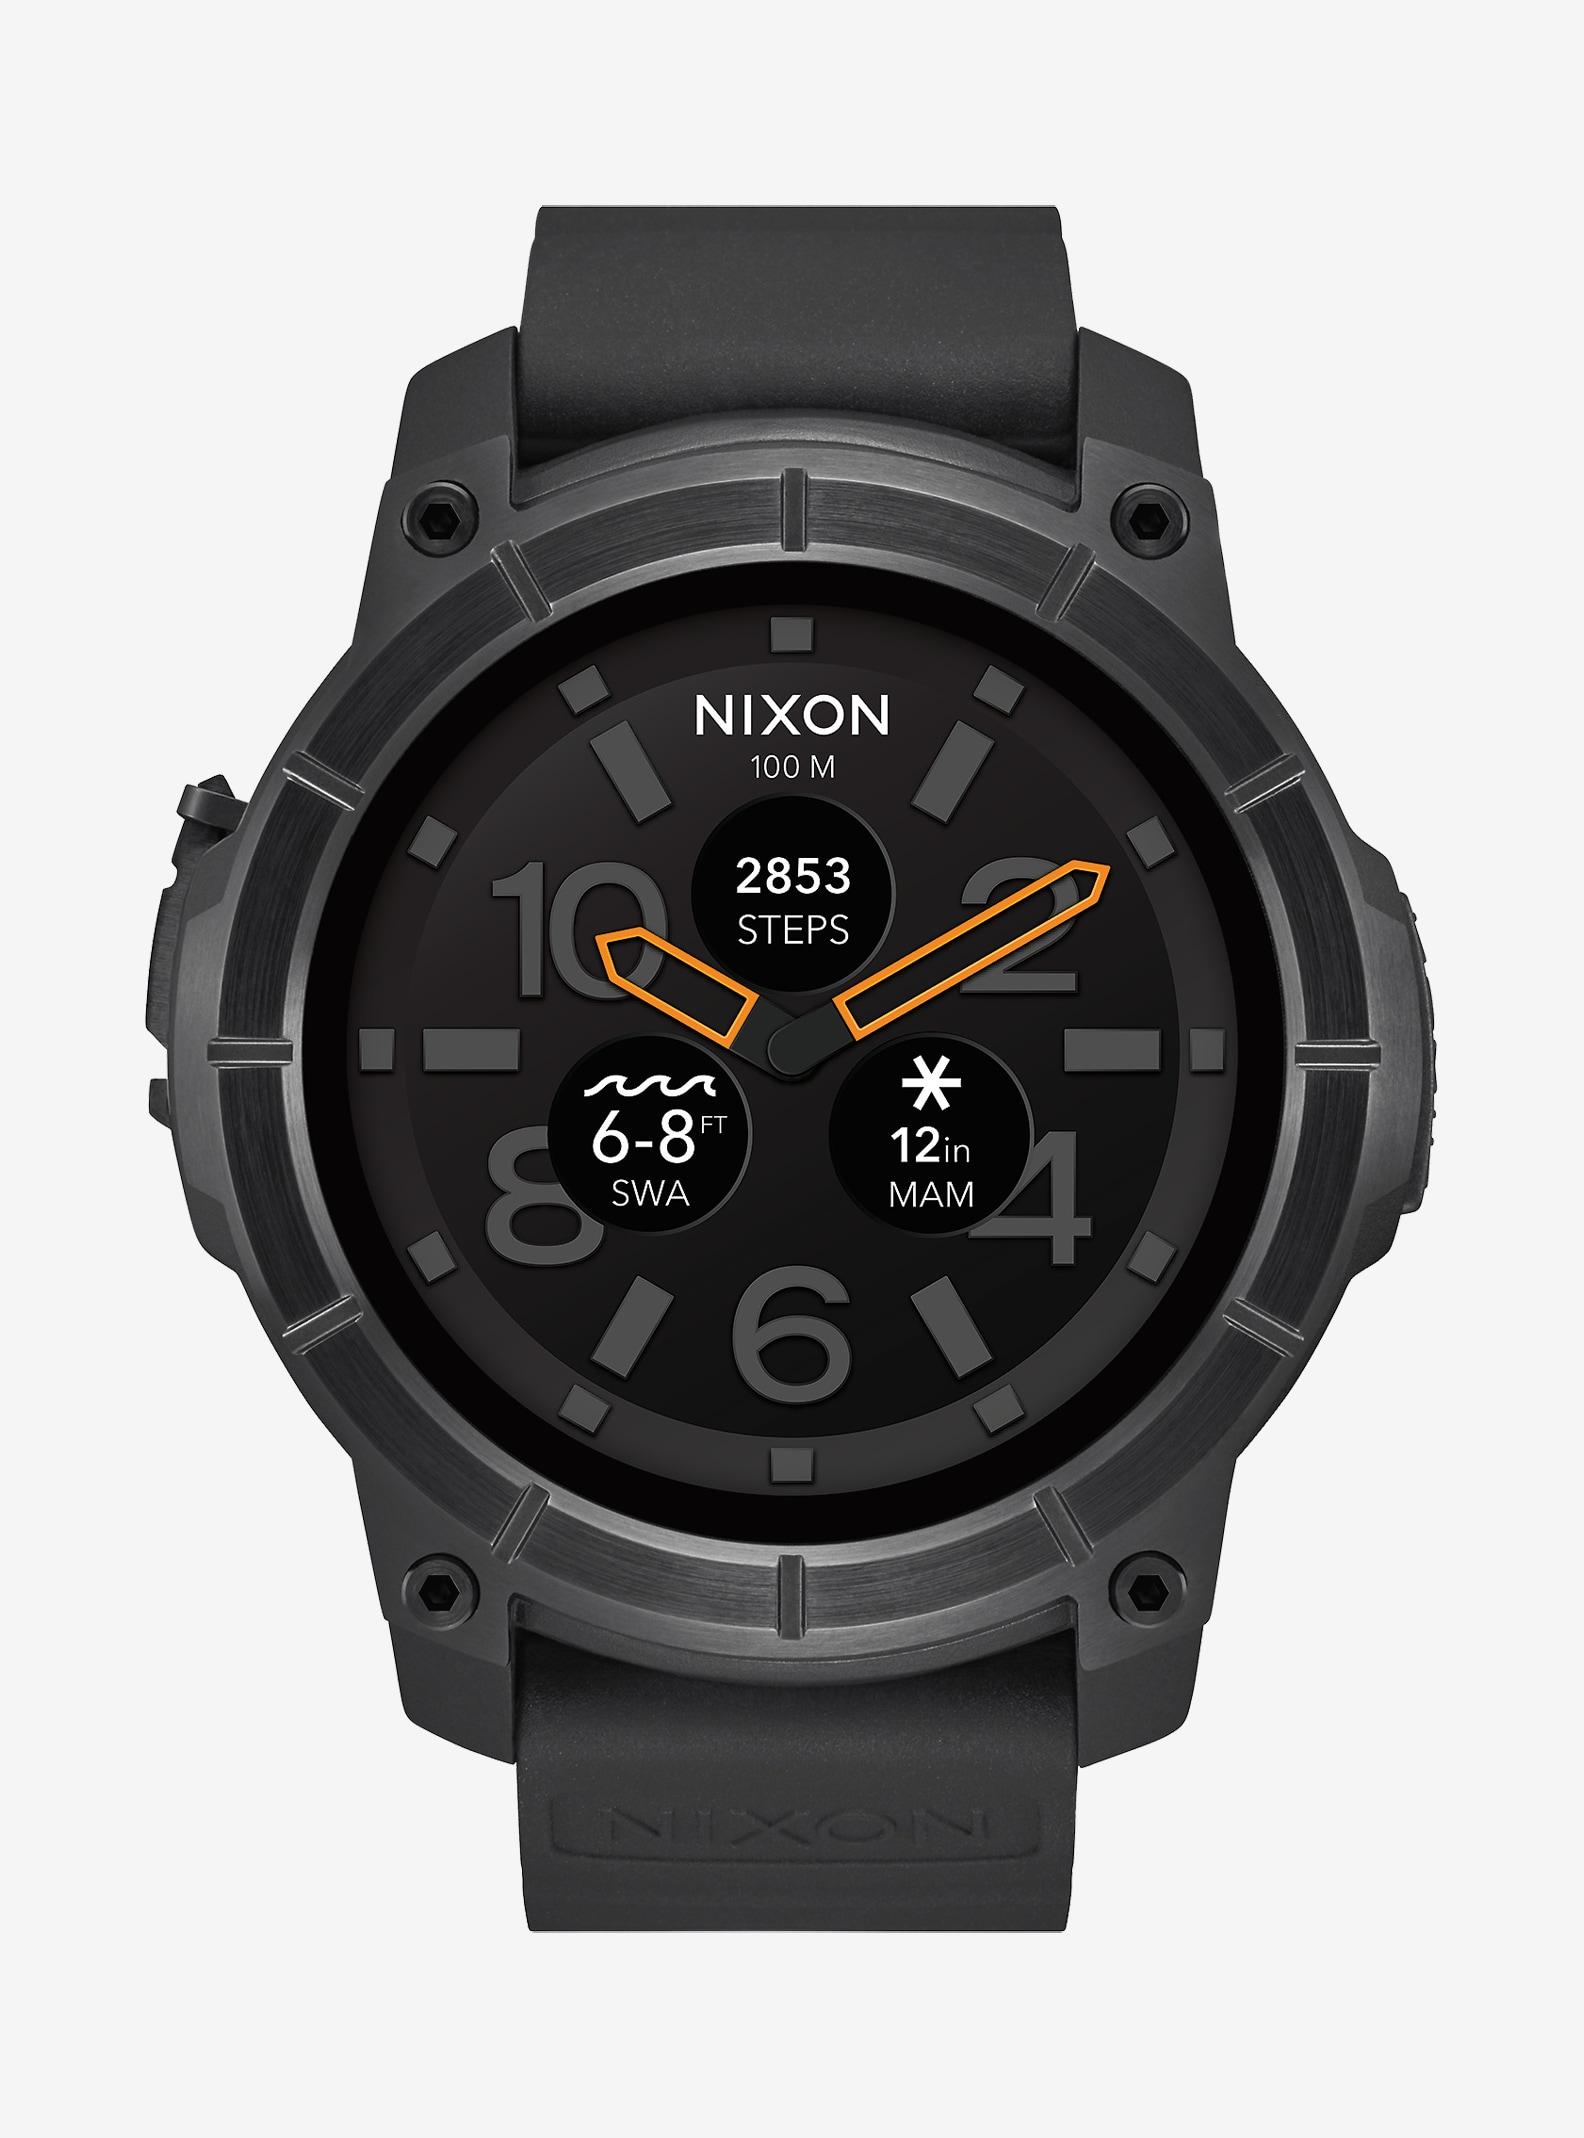 Nixon Mission Watch shown in Black